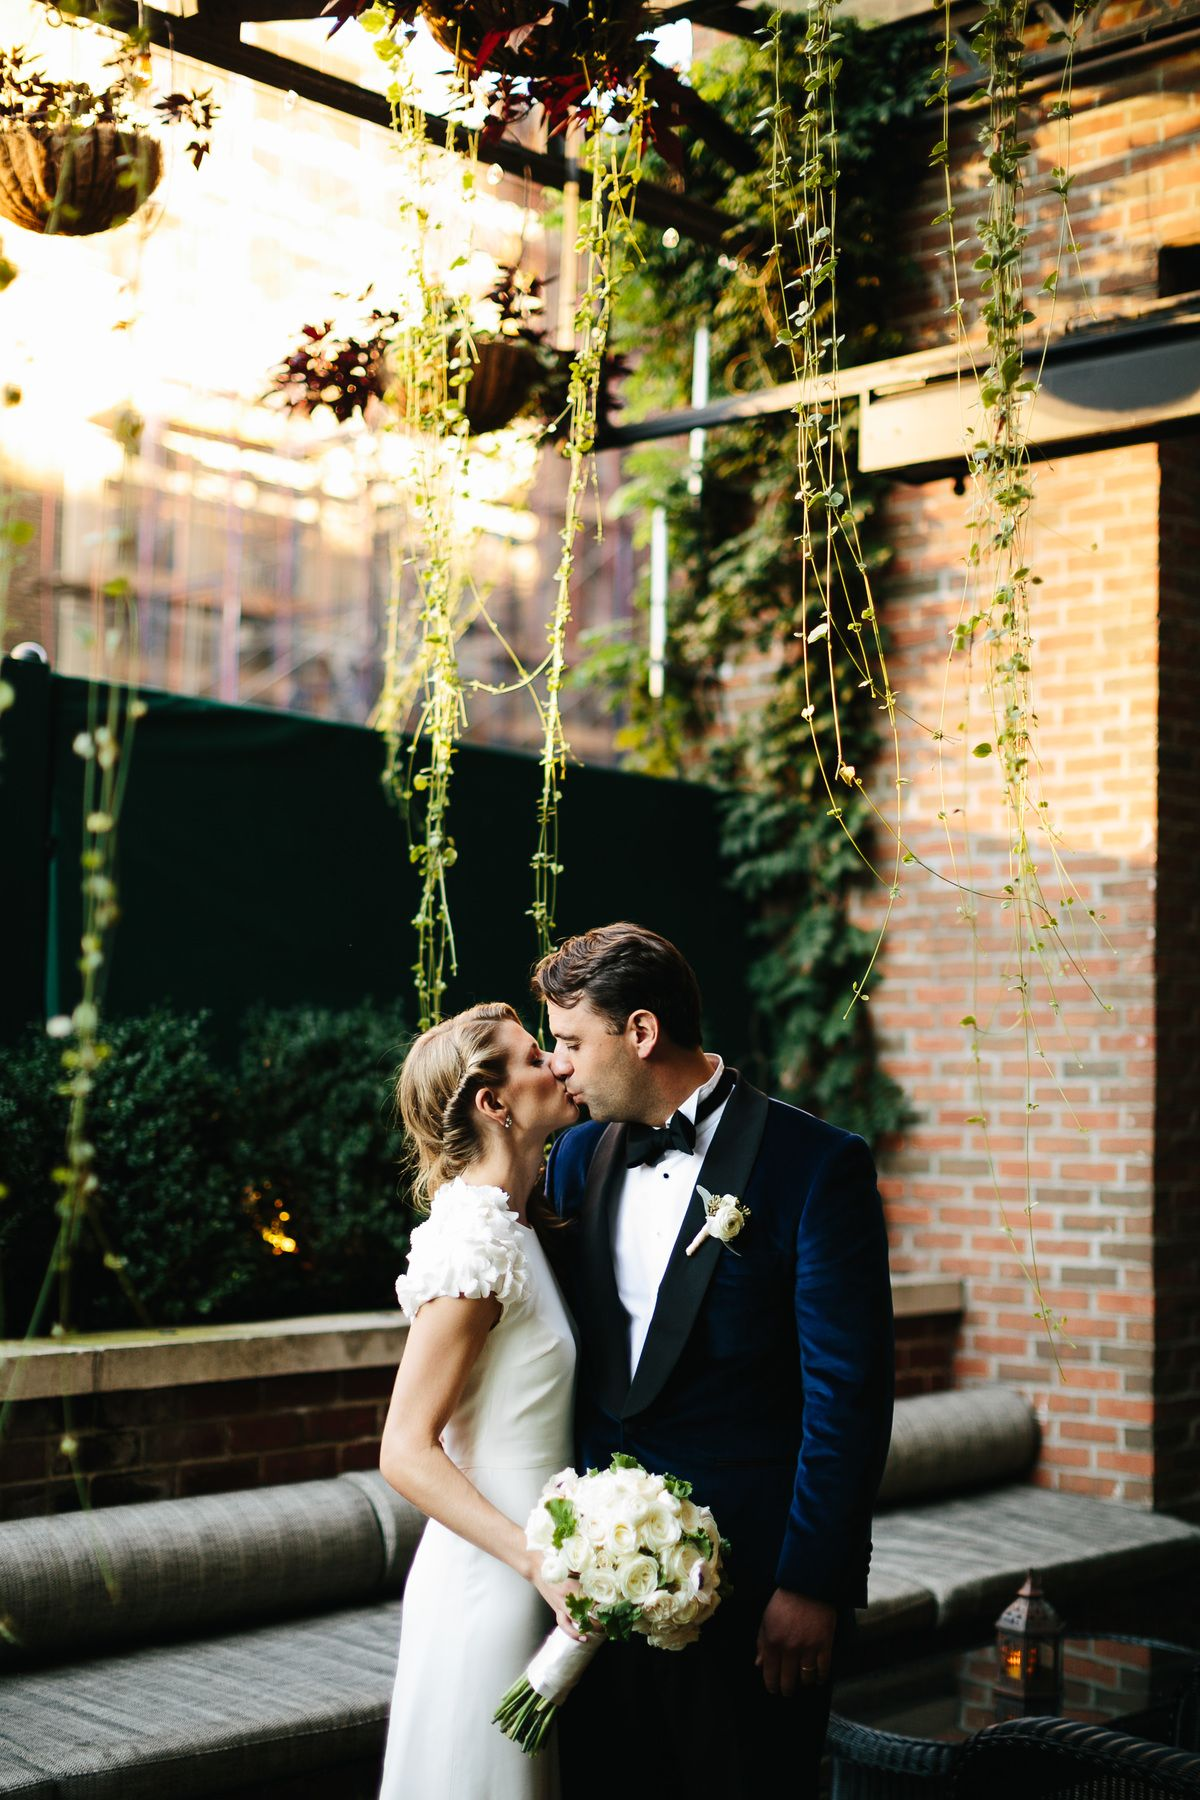 wedding ceremony new york city%0A Alternative NYC Wedding Venues Perfect for Saying   I do     by Bride  u      Blossom  NYC u    s Only Luxury Wedding Florist  Wedding Ideas  Tips and  Trends for the